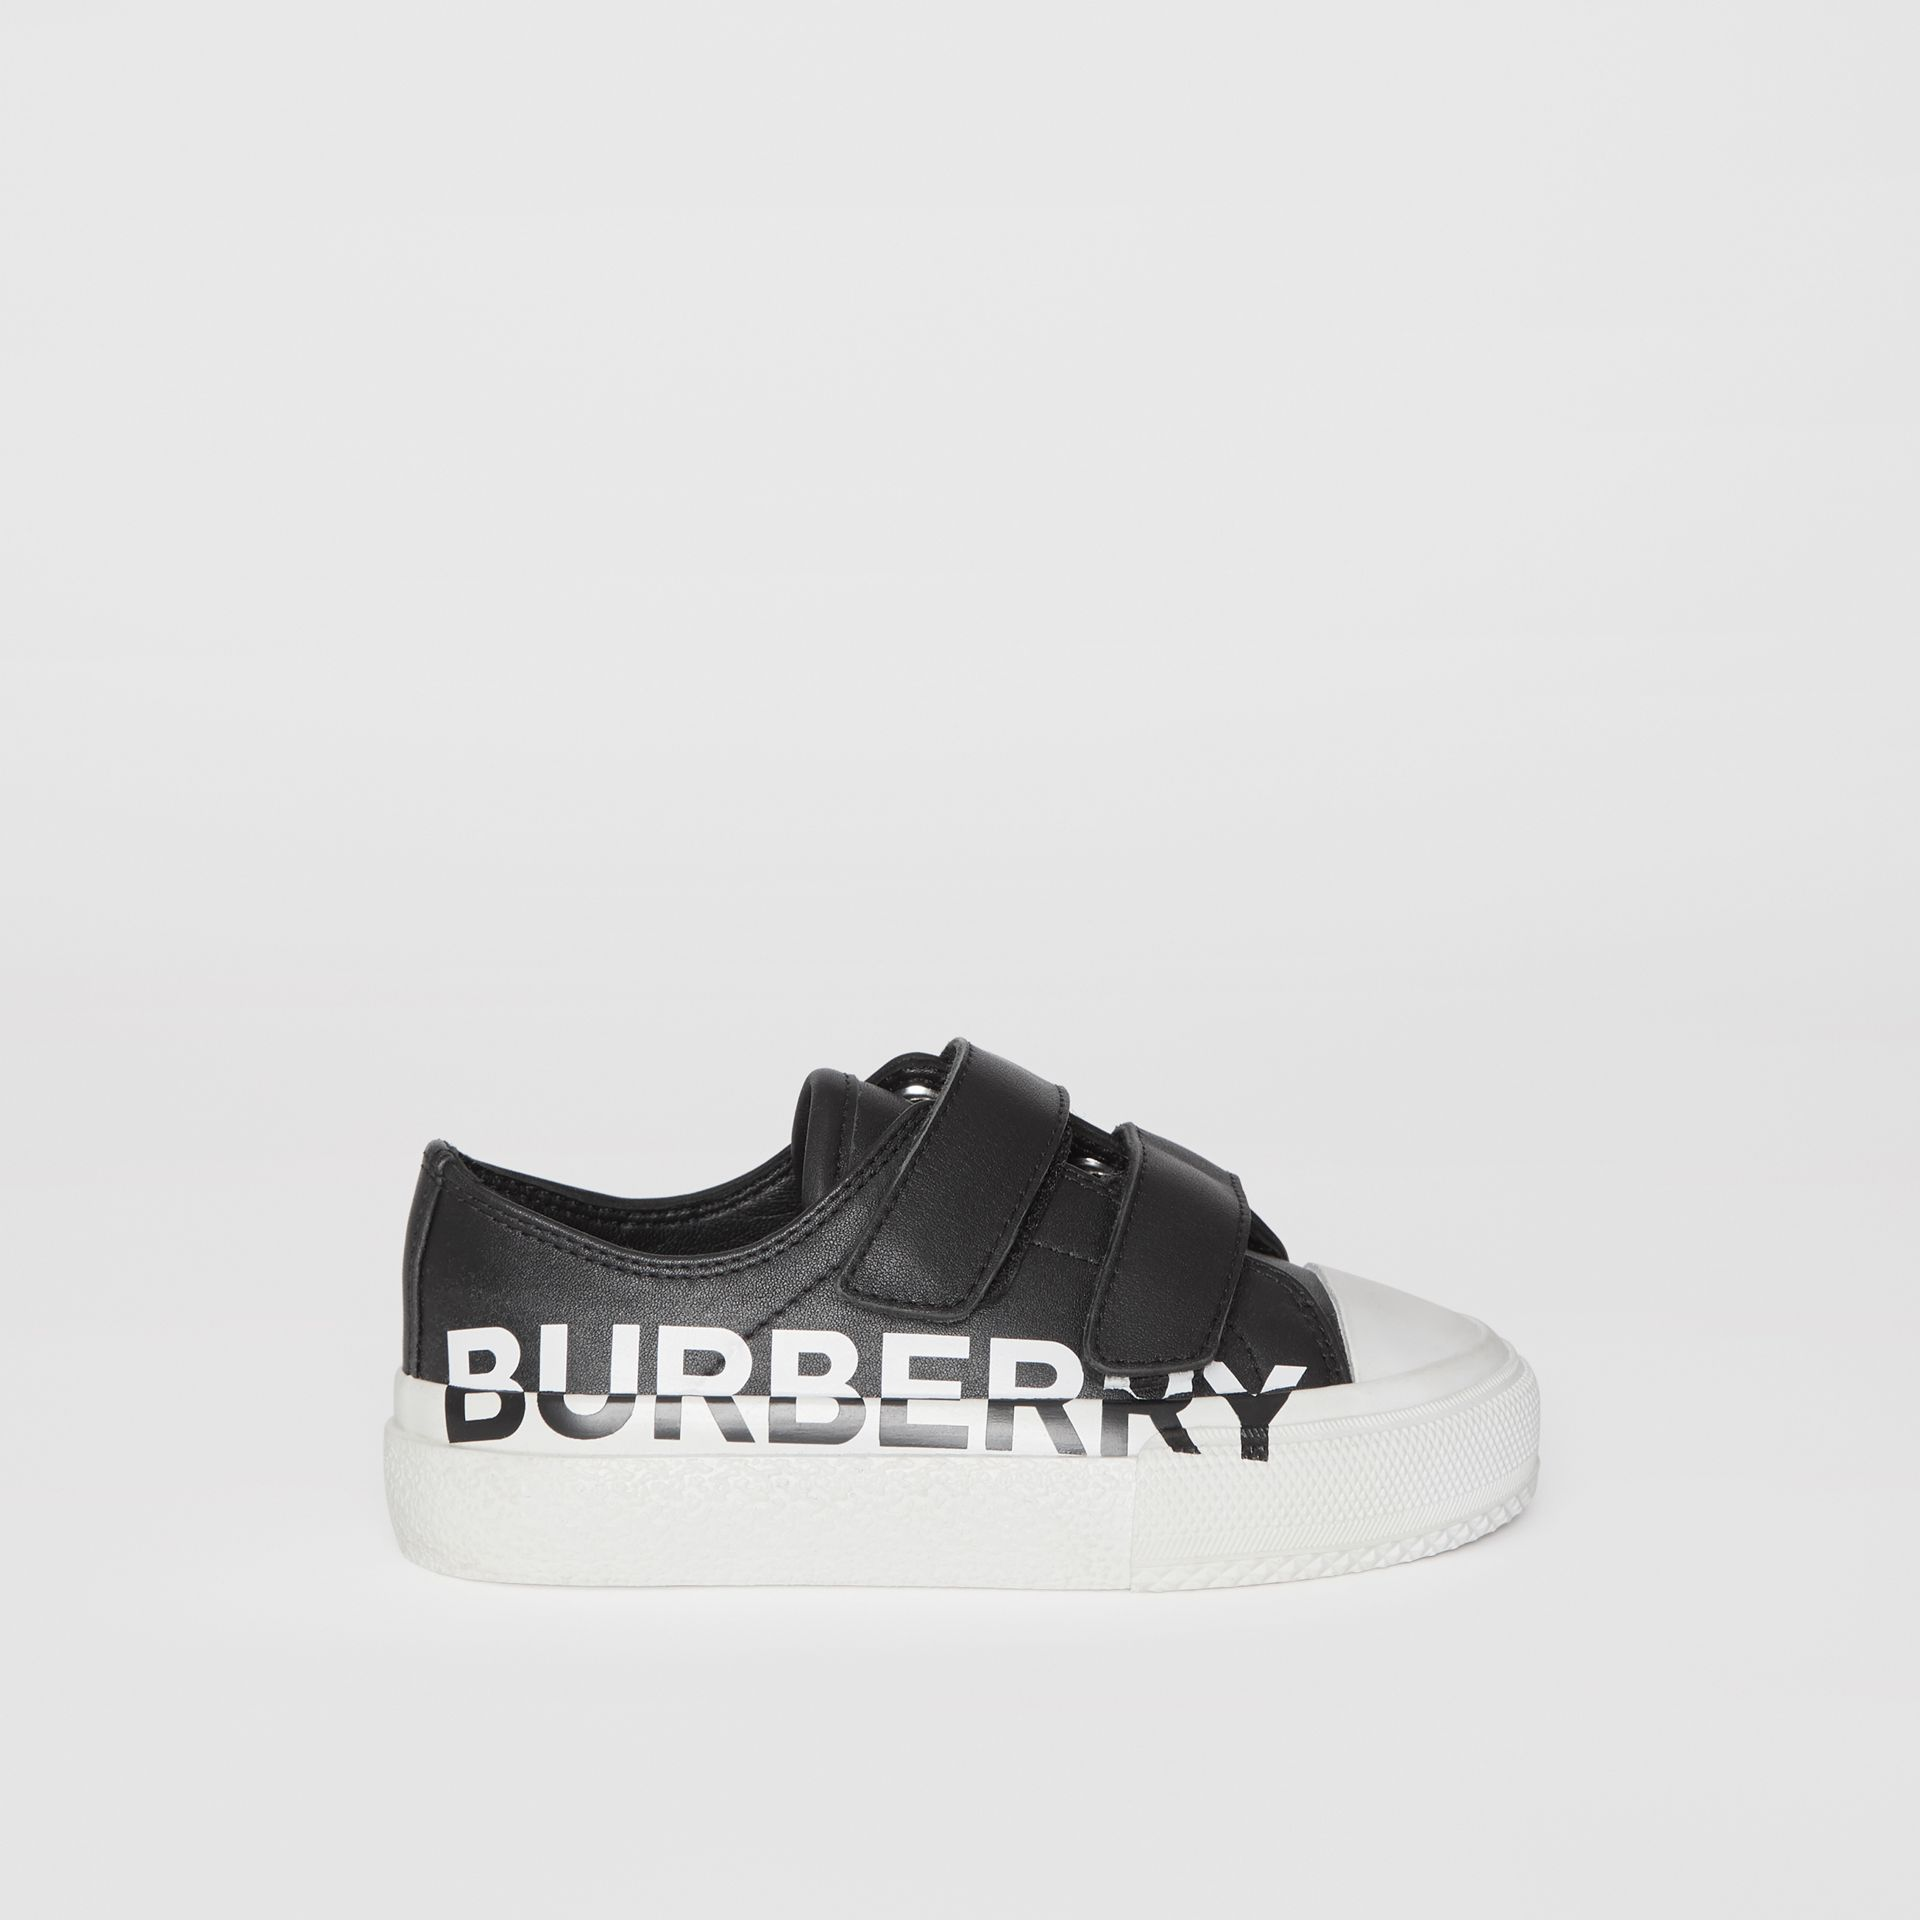 Logo Print Two-tone Leather Sneakers in Black/white - Children | Burberry United States - gallery image 3